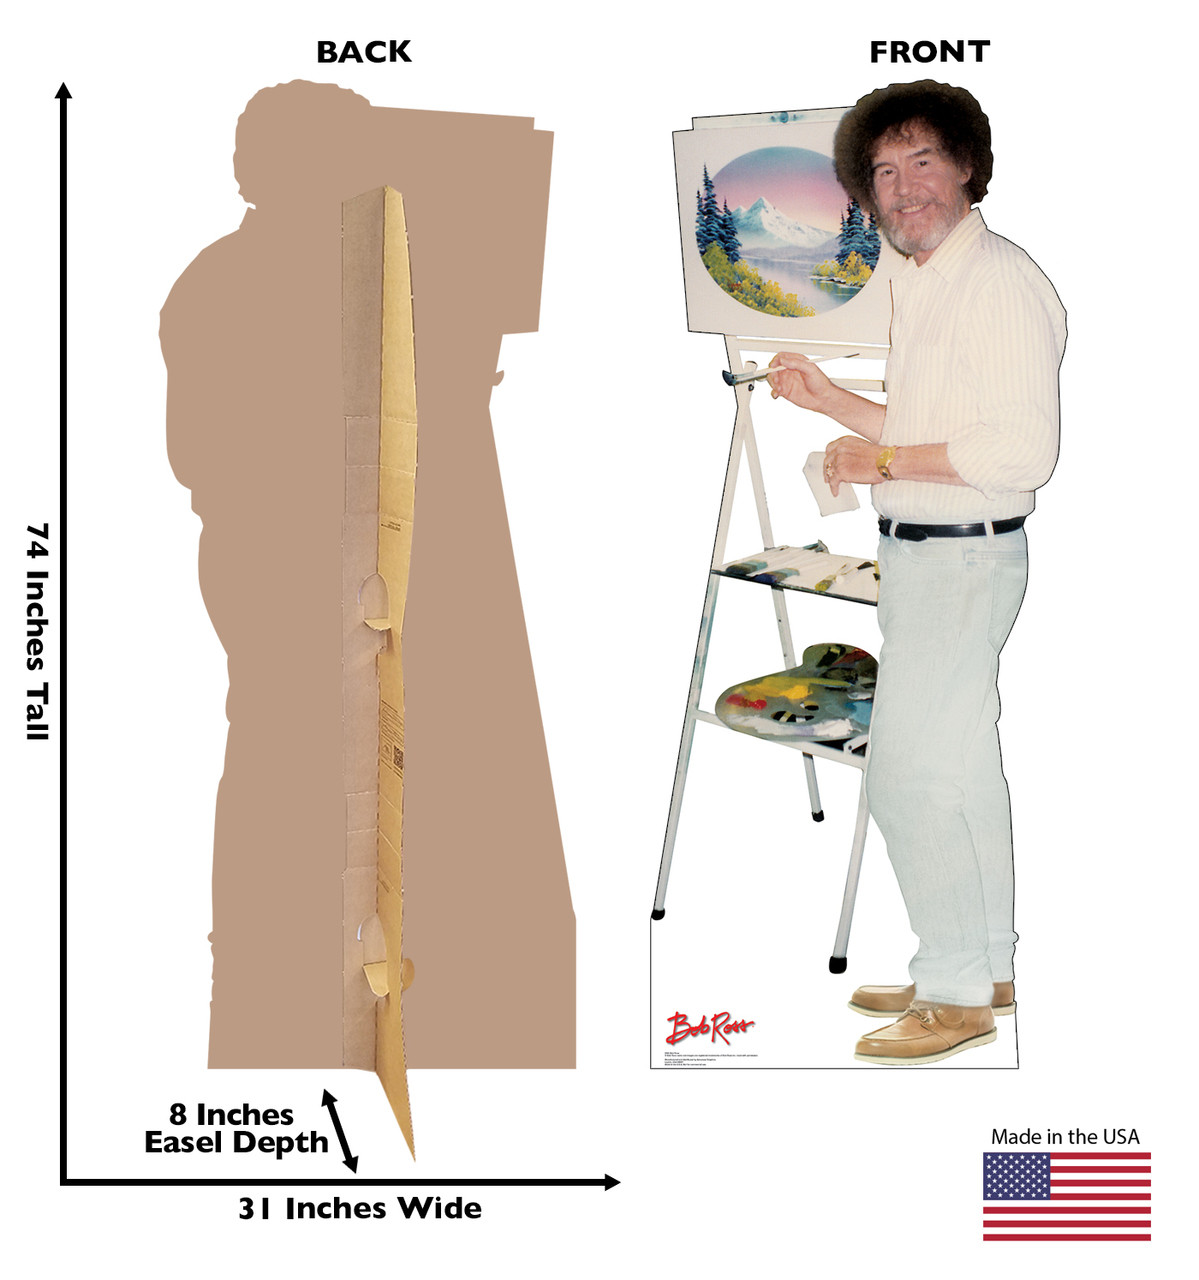 Life-size Bob Ross Cardboard Standup front and back view